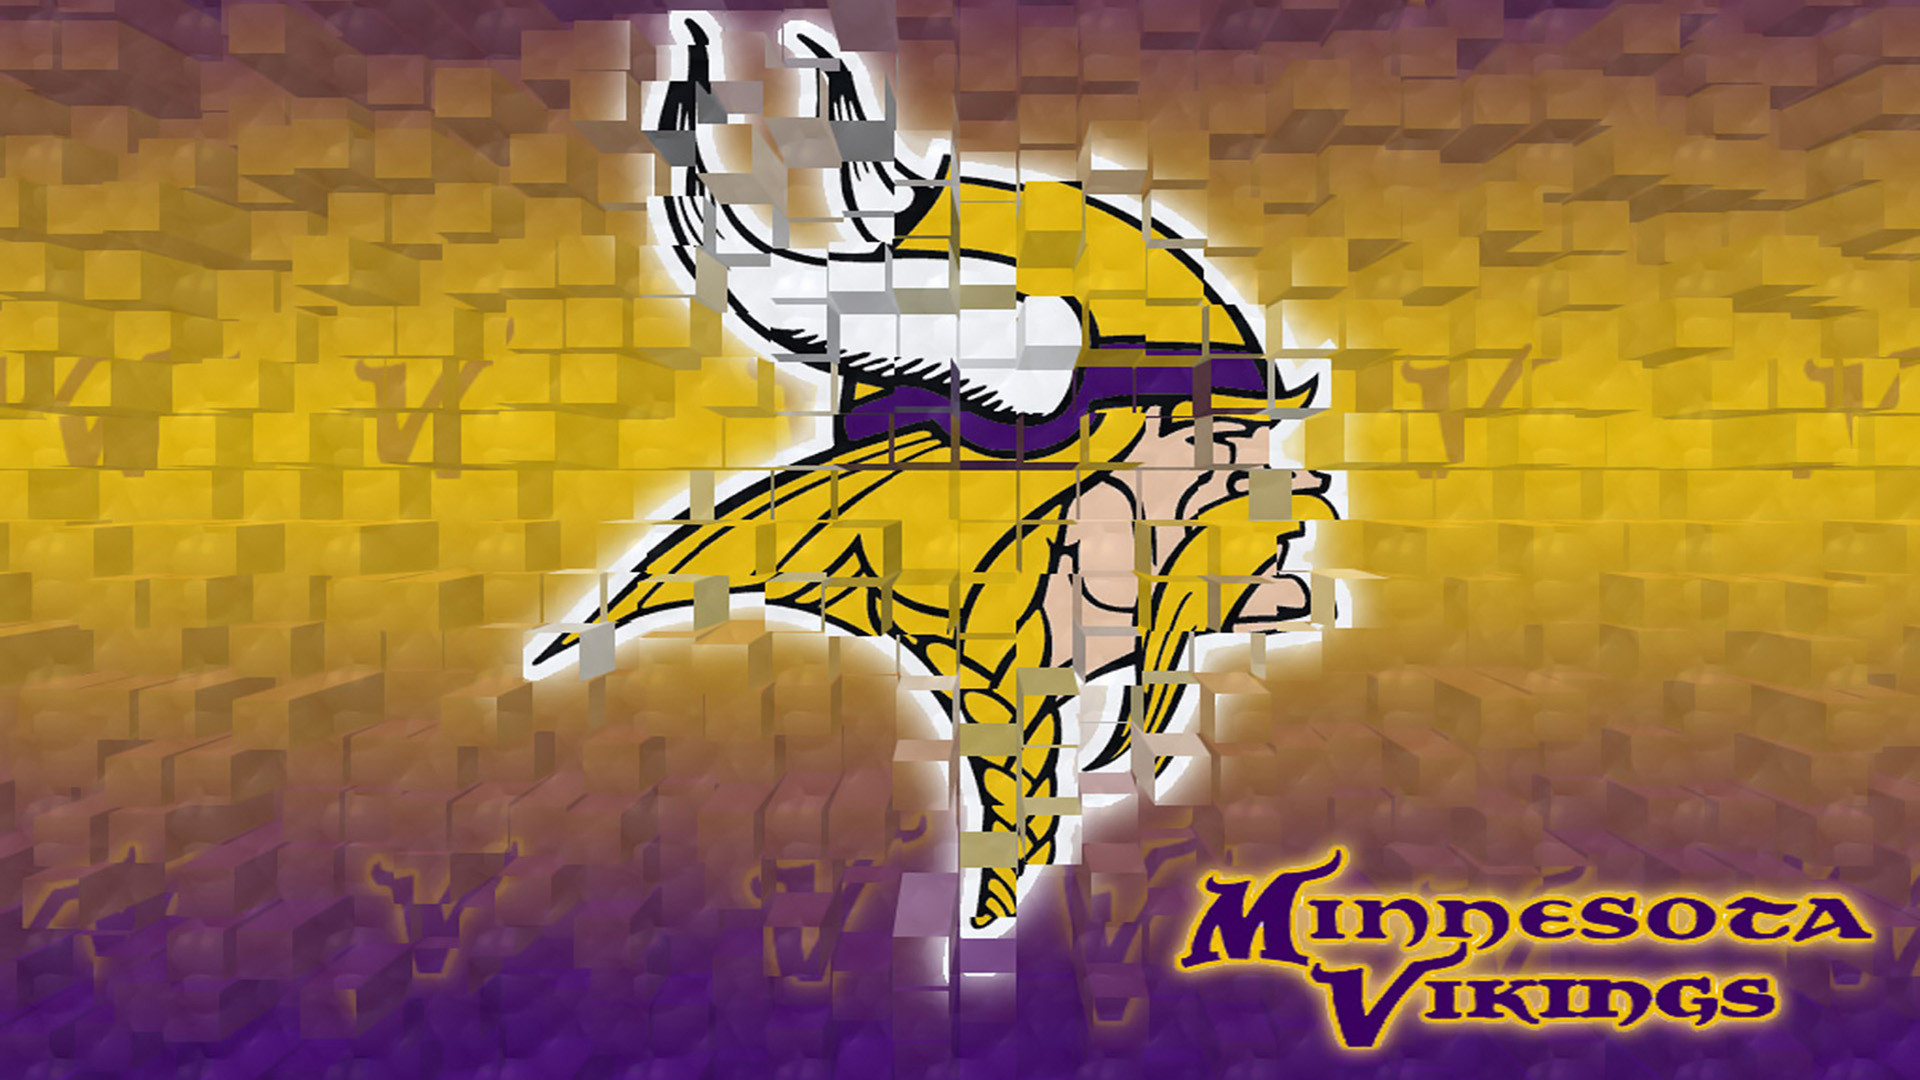 best images about MINNESOTA VIKINGS on Pinterest Football | HD Wallpapers |  Pinterest | Vikings, Hd wallpaper and Wallpaper